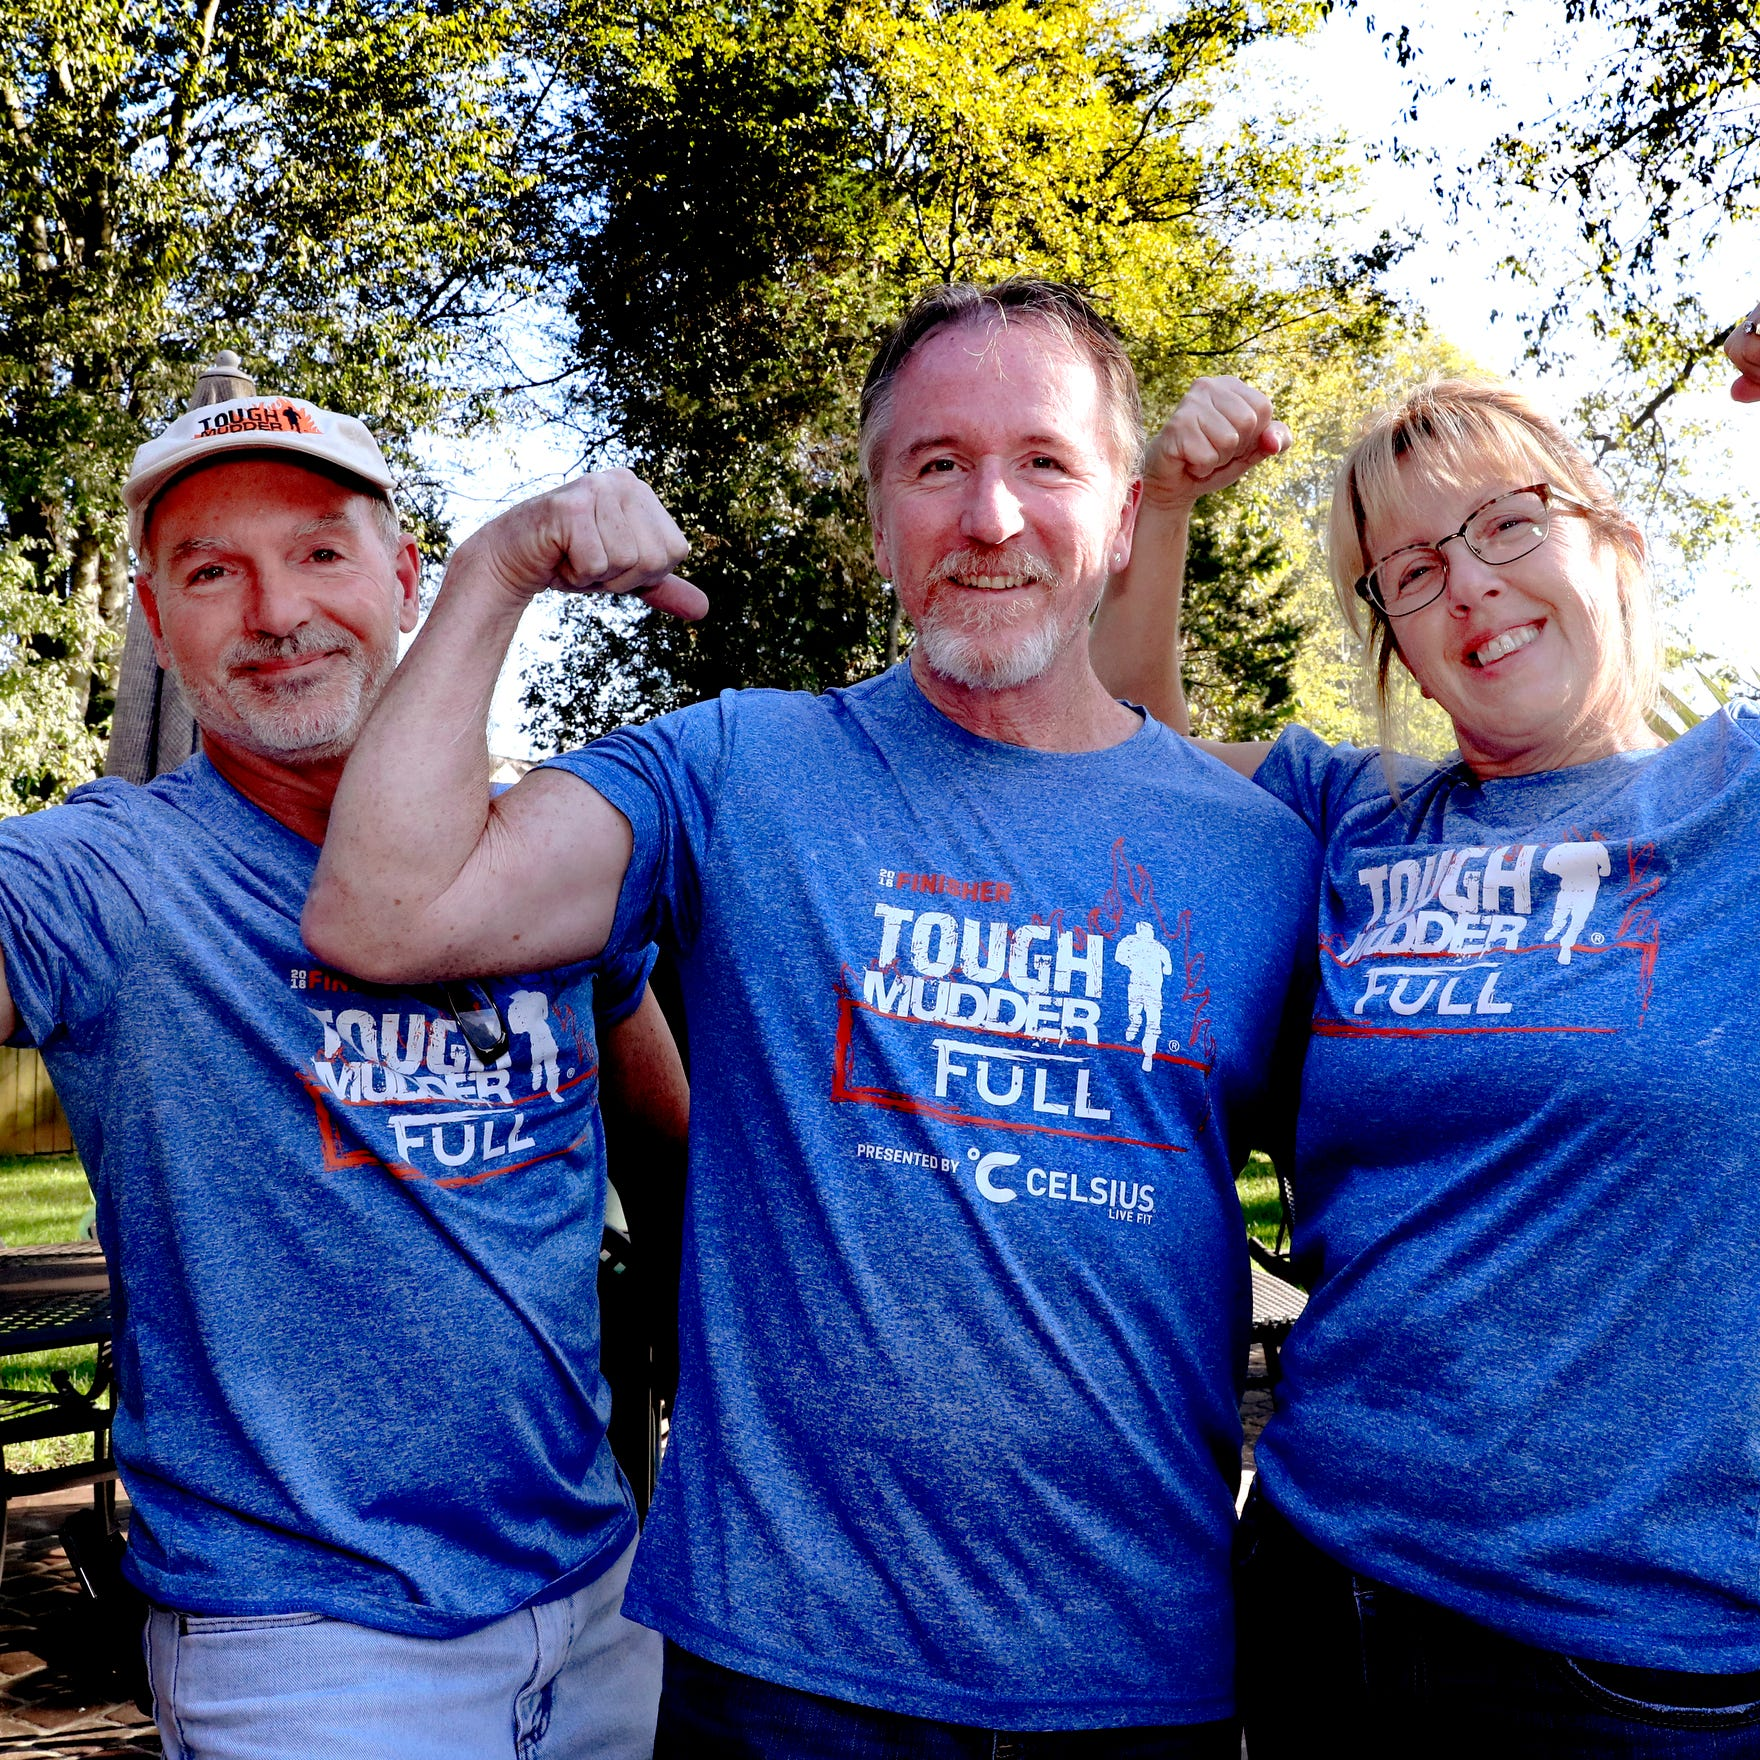 'Never give up': Smyrna man with MS completes Tough Mudder competition